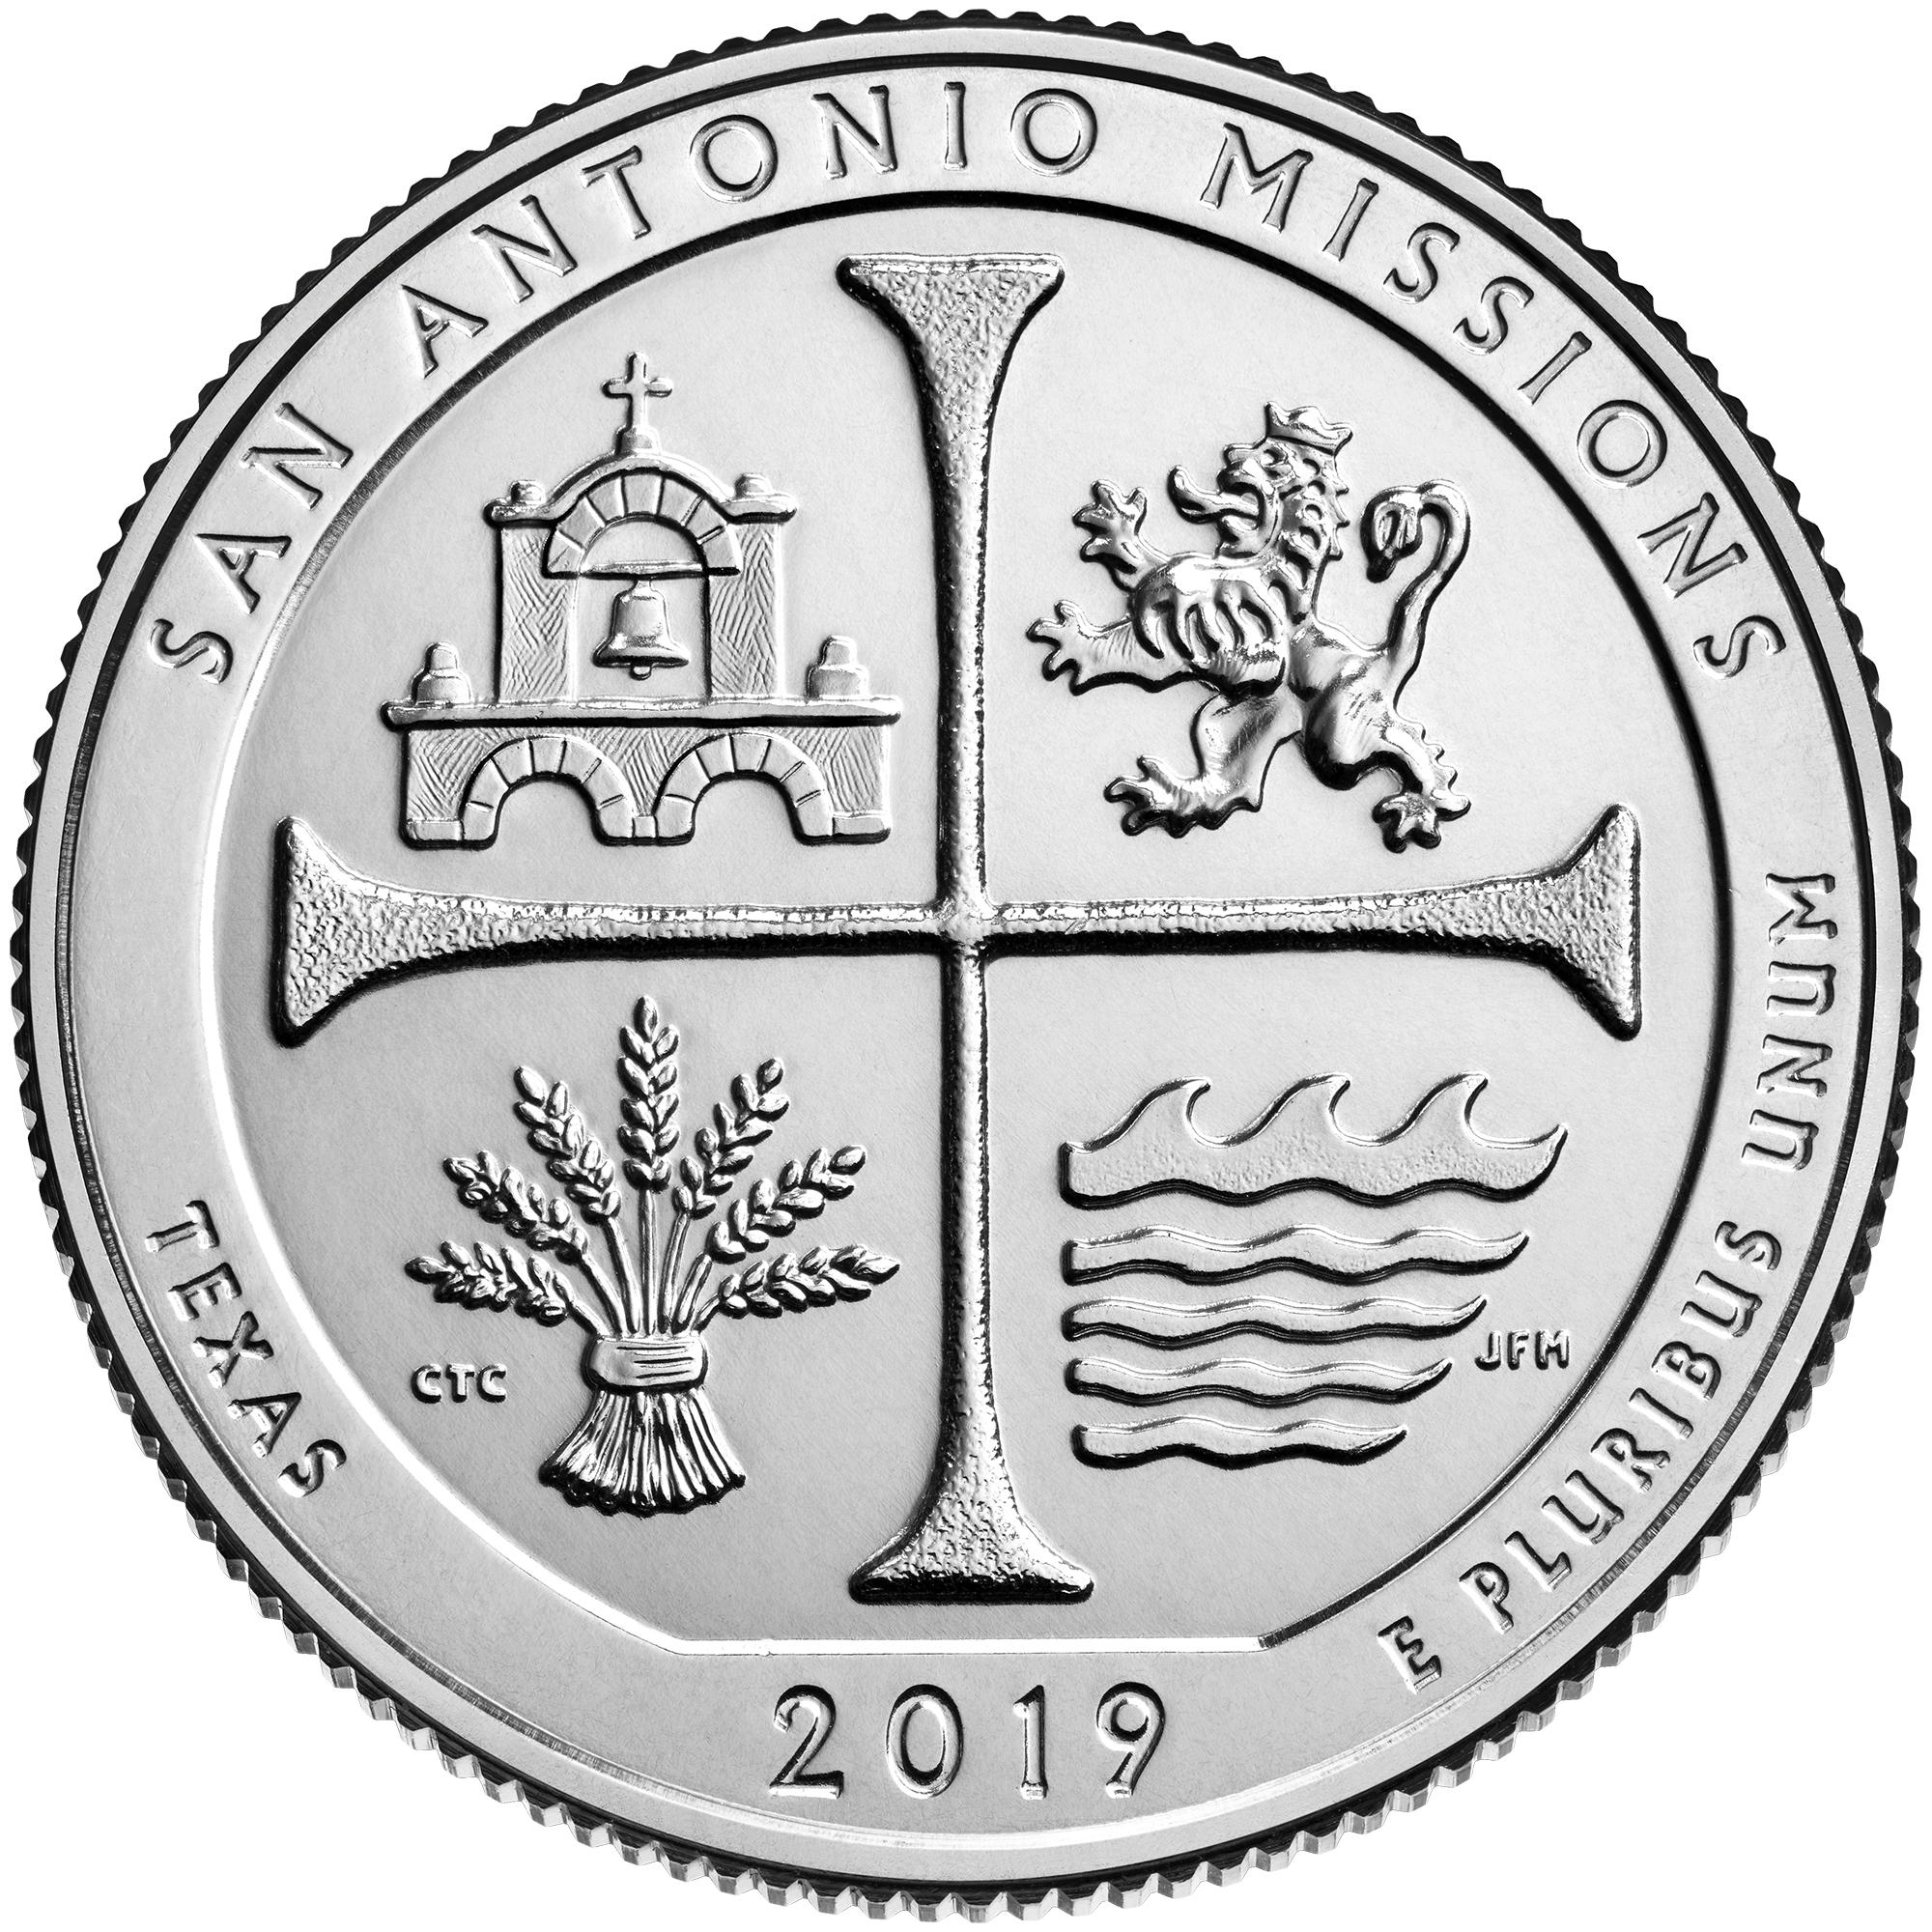 San Antonio Missions quarter to be released Thursday